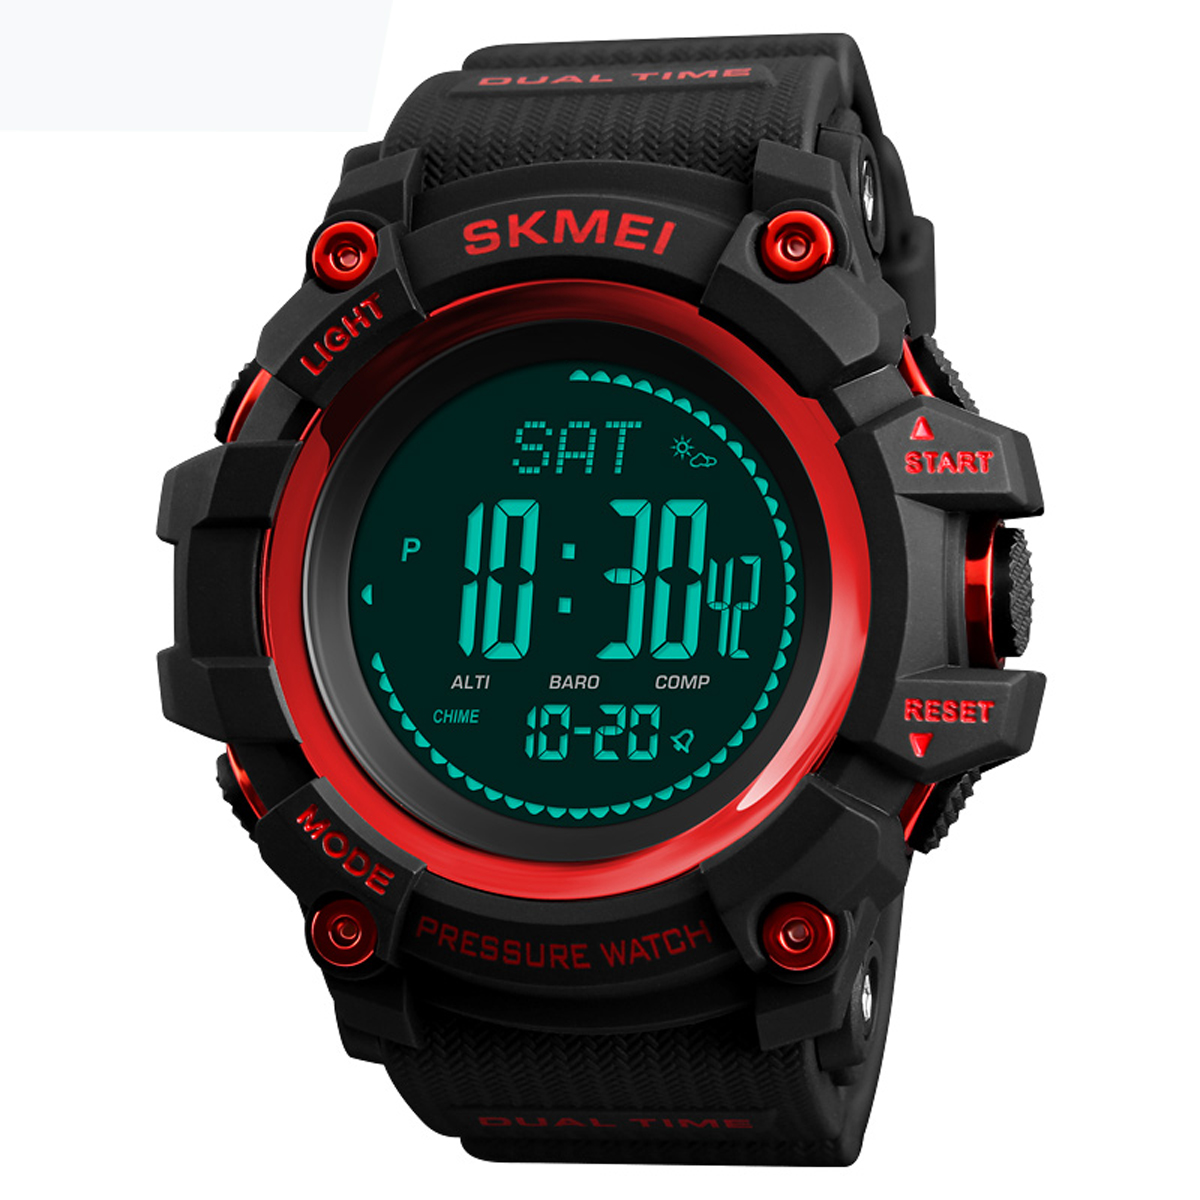 SKMEI 1358 3ATM Waterproof Smart Watch Pedometer Barometer - Red Colour